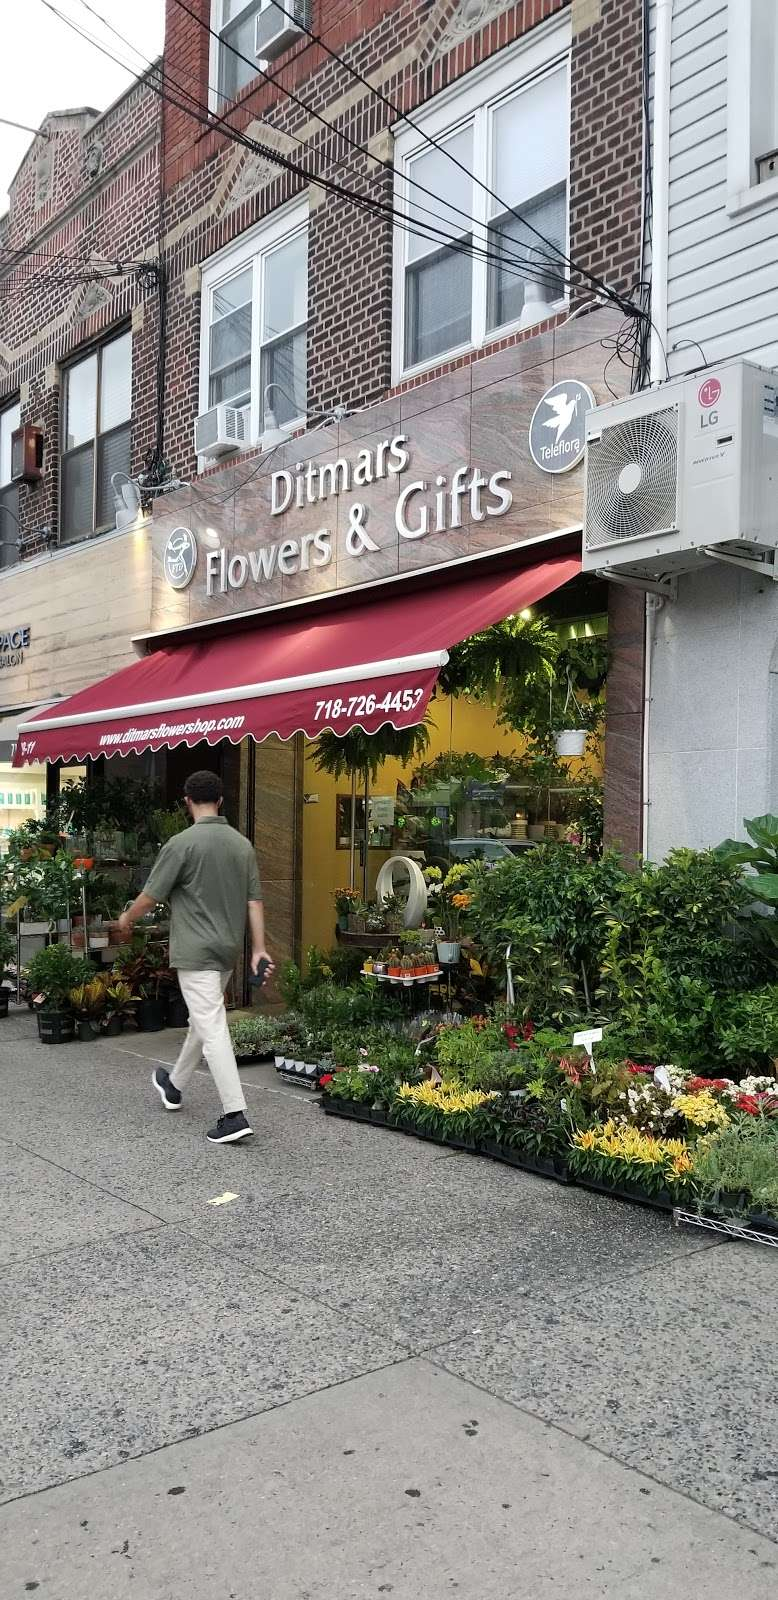 Ditmars Flower - florist  | Photo 7 of 10 | Address: 2911 Ditmars Blvd, Queens, NY 11105, USA | Phone: (718) 726-4453